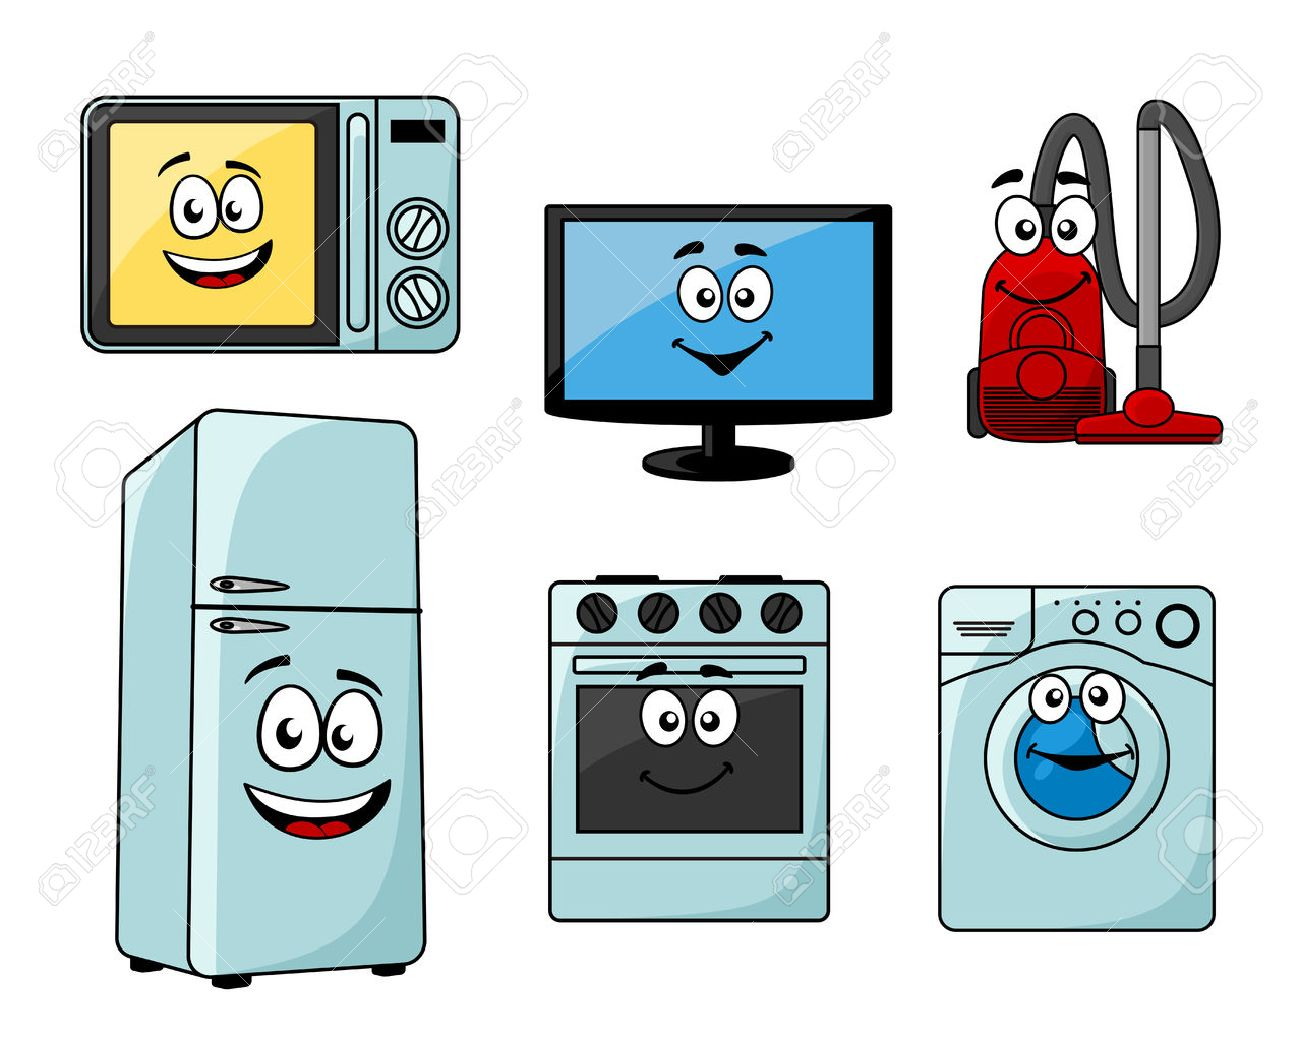 Cartoon Household Appliances Set With Microwave, TV, Vacuum Cleaner,..  Royalty Free Cliparts, Vectors, And Stock Illustration. Image 31200115.